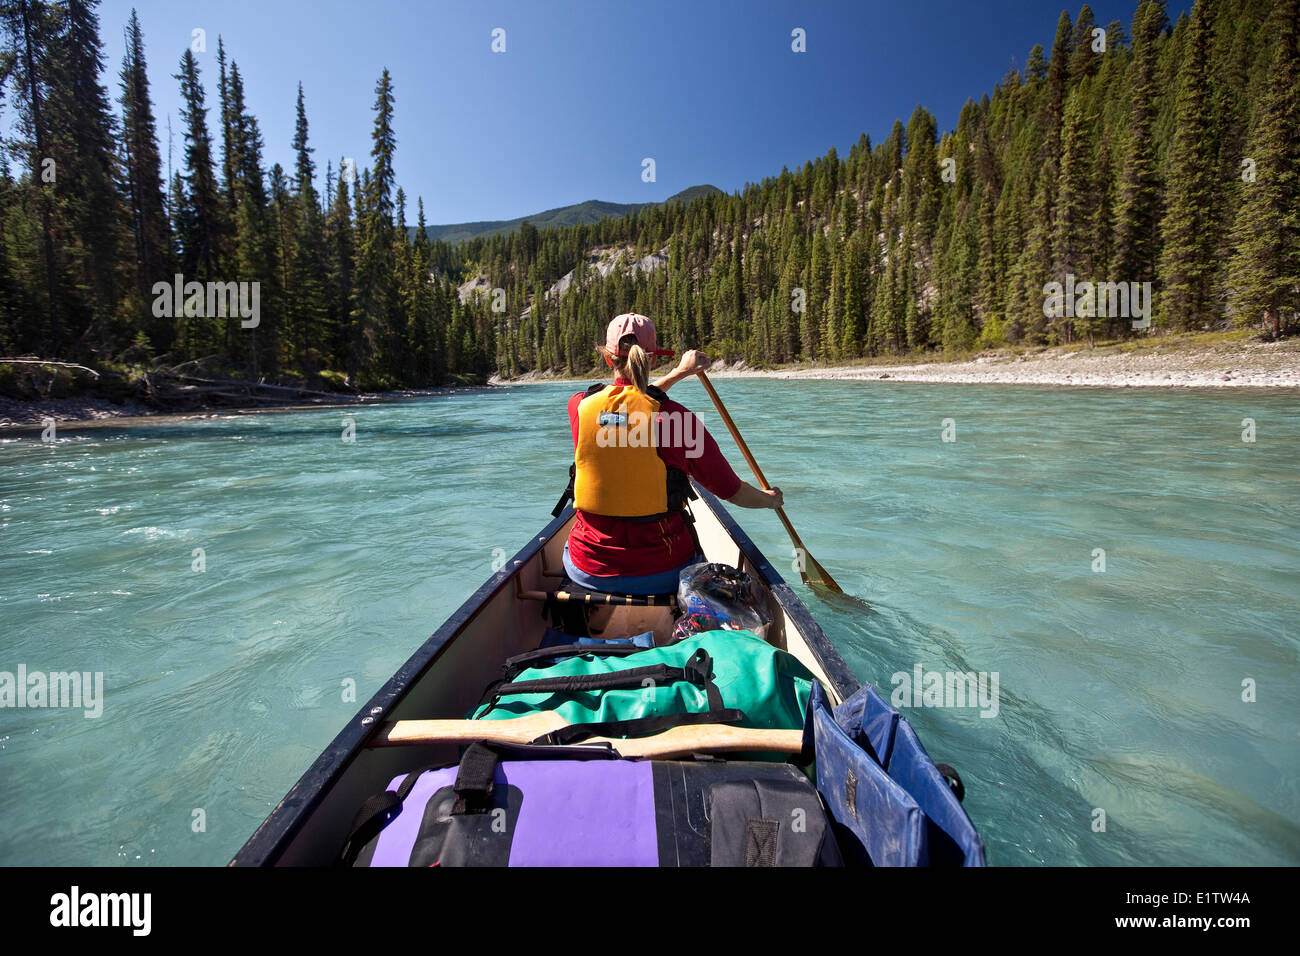 Woman paddling in bow of canoe on Kootenay River, Kootenay National Park, BC, Canada. - Stock Image